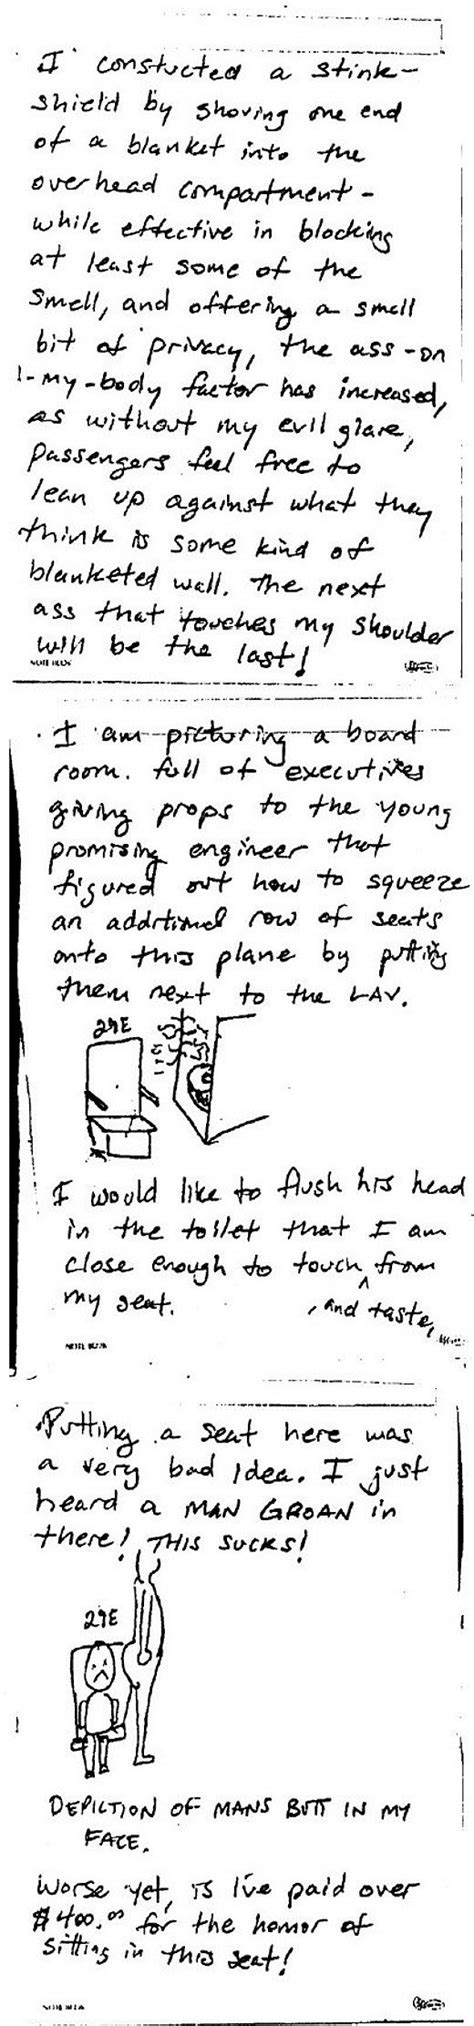 Airline Complaint Letter Seat 29e Pdf The Horror Of Seat 29e Broadsheet Ie